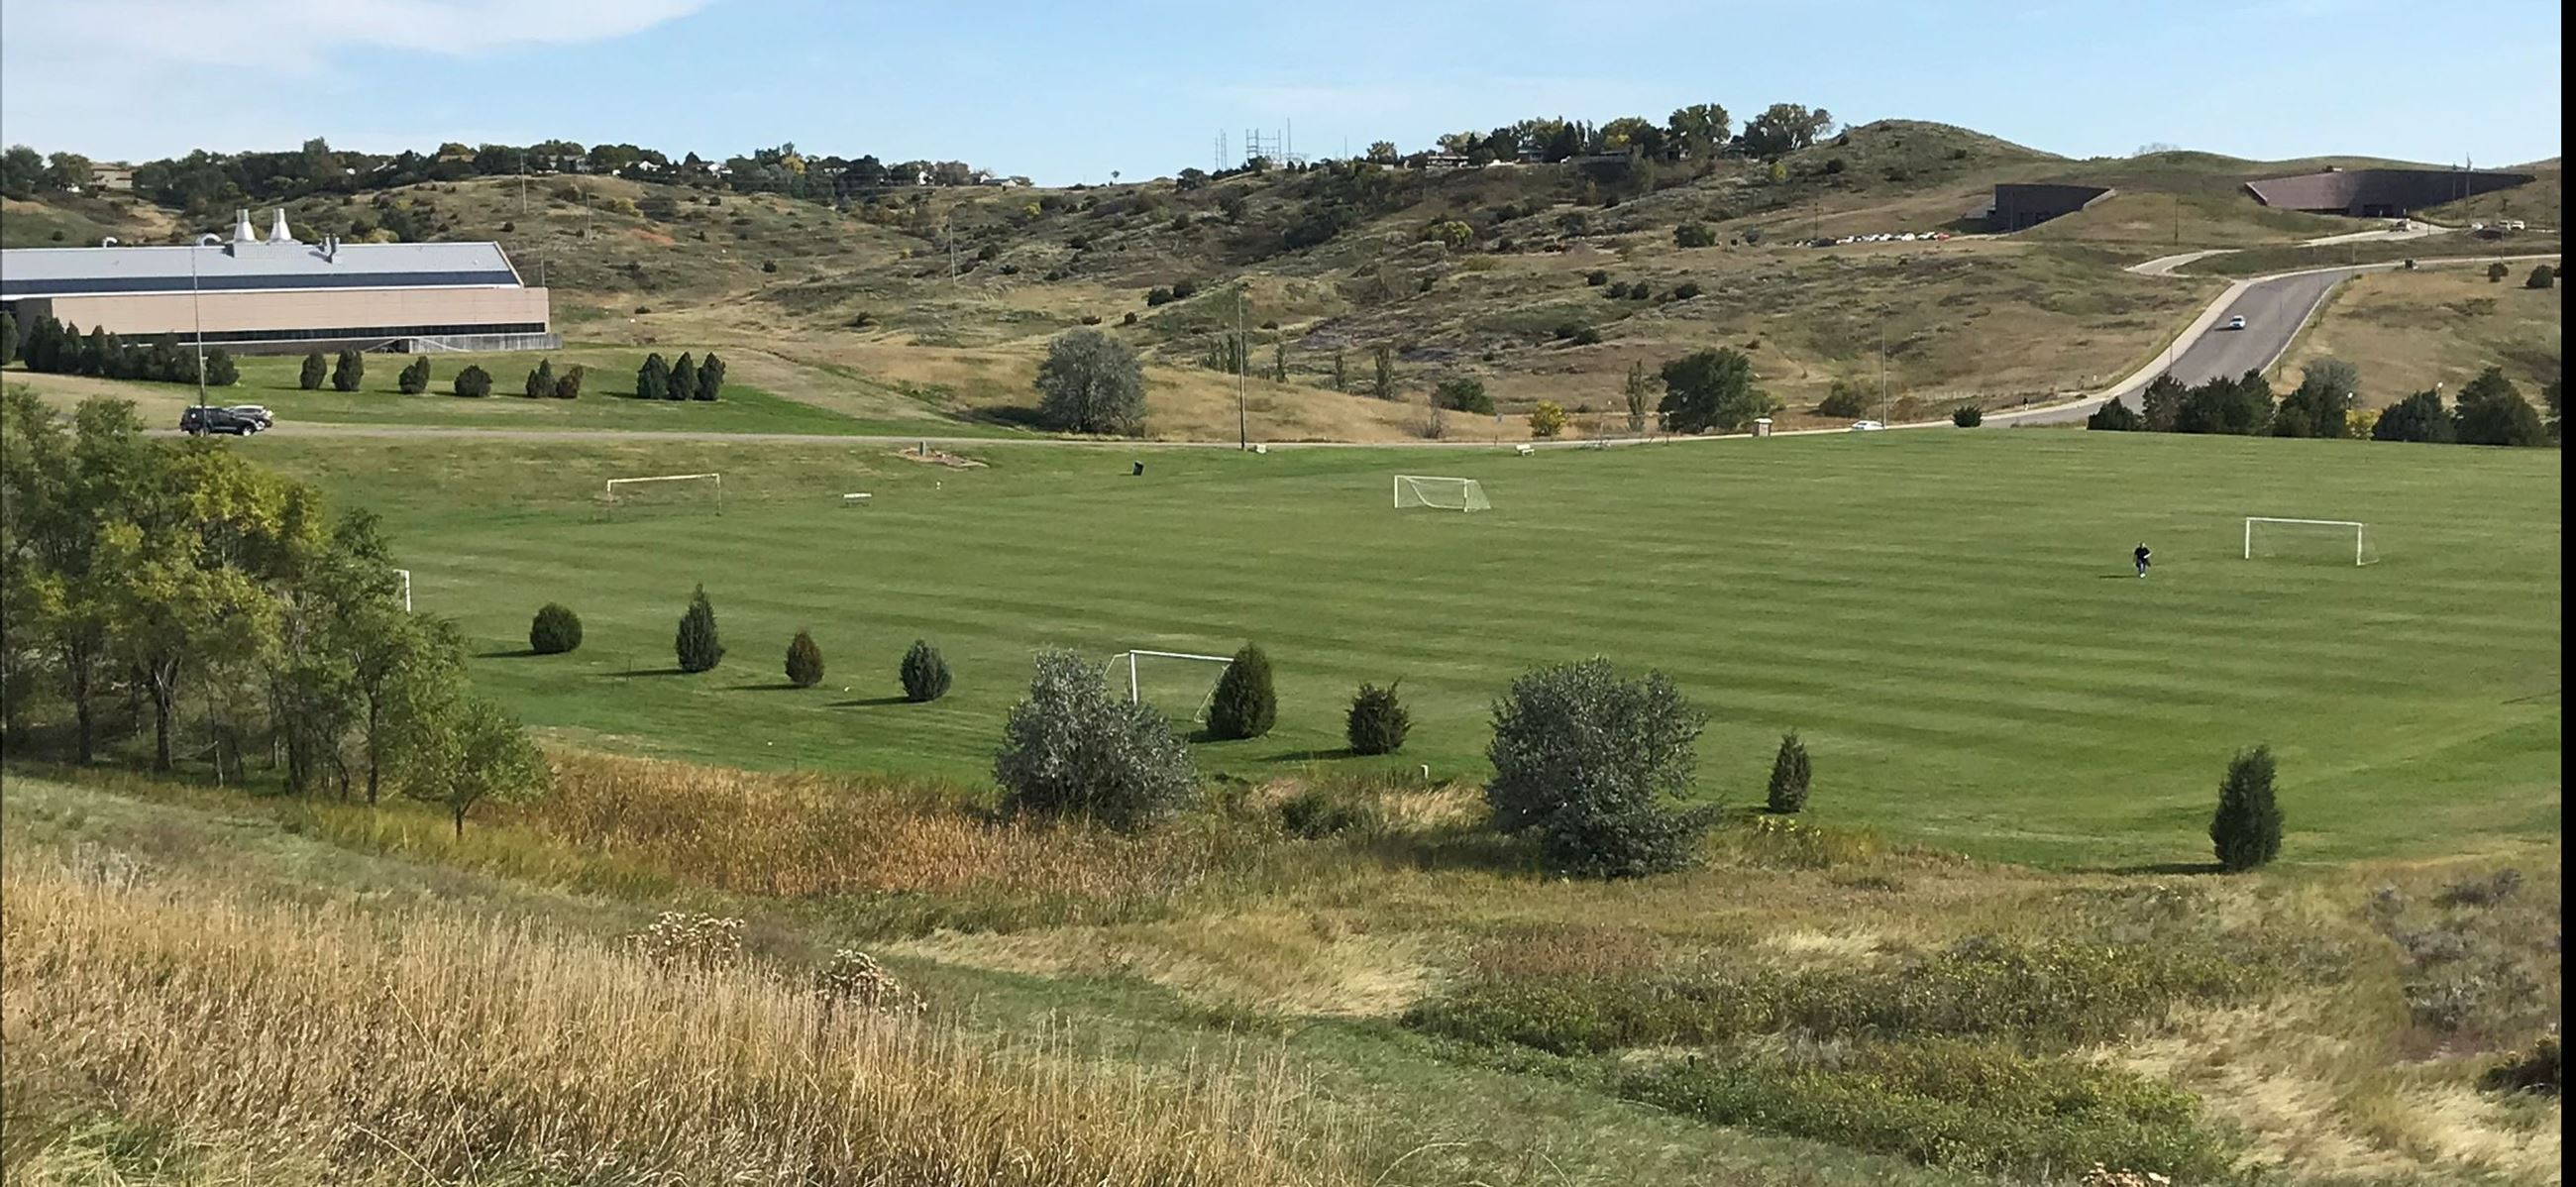 HILGERS GULCH SOCCER FIELDS IMAGE